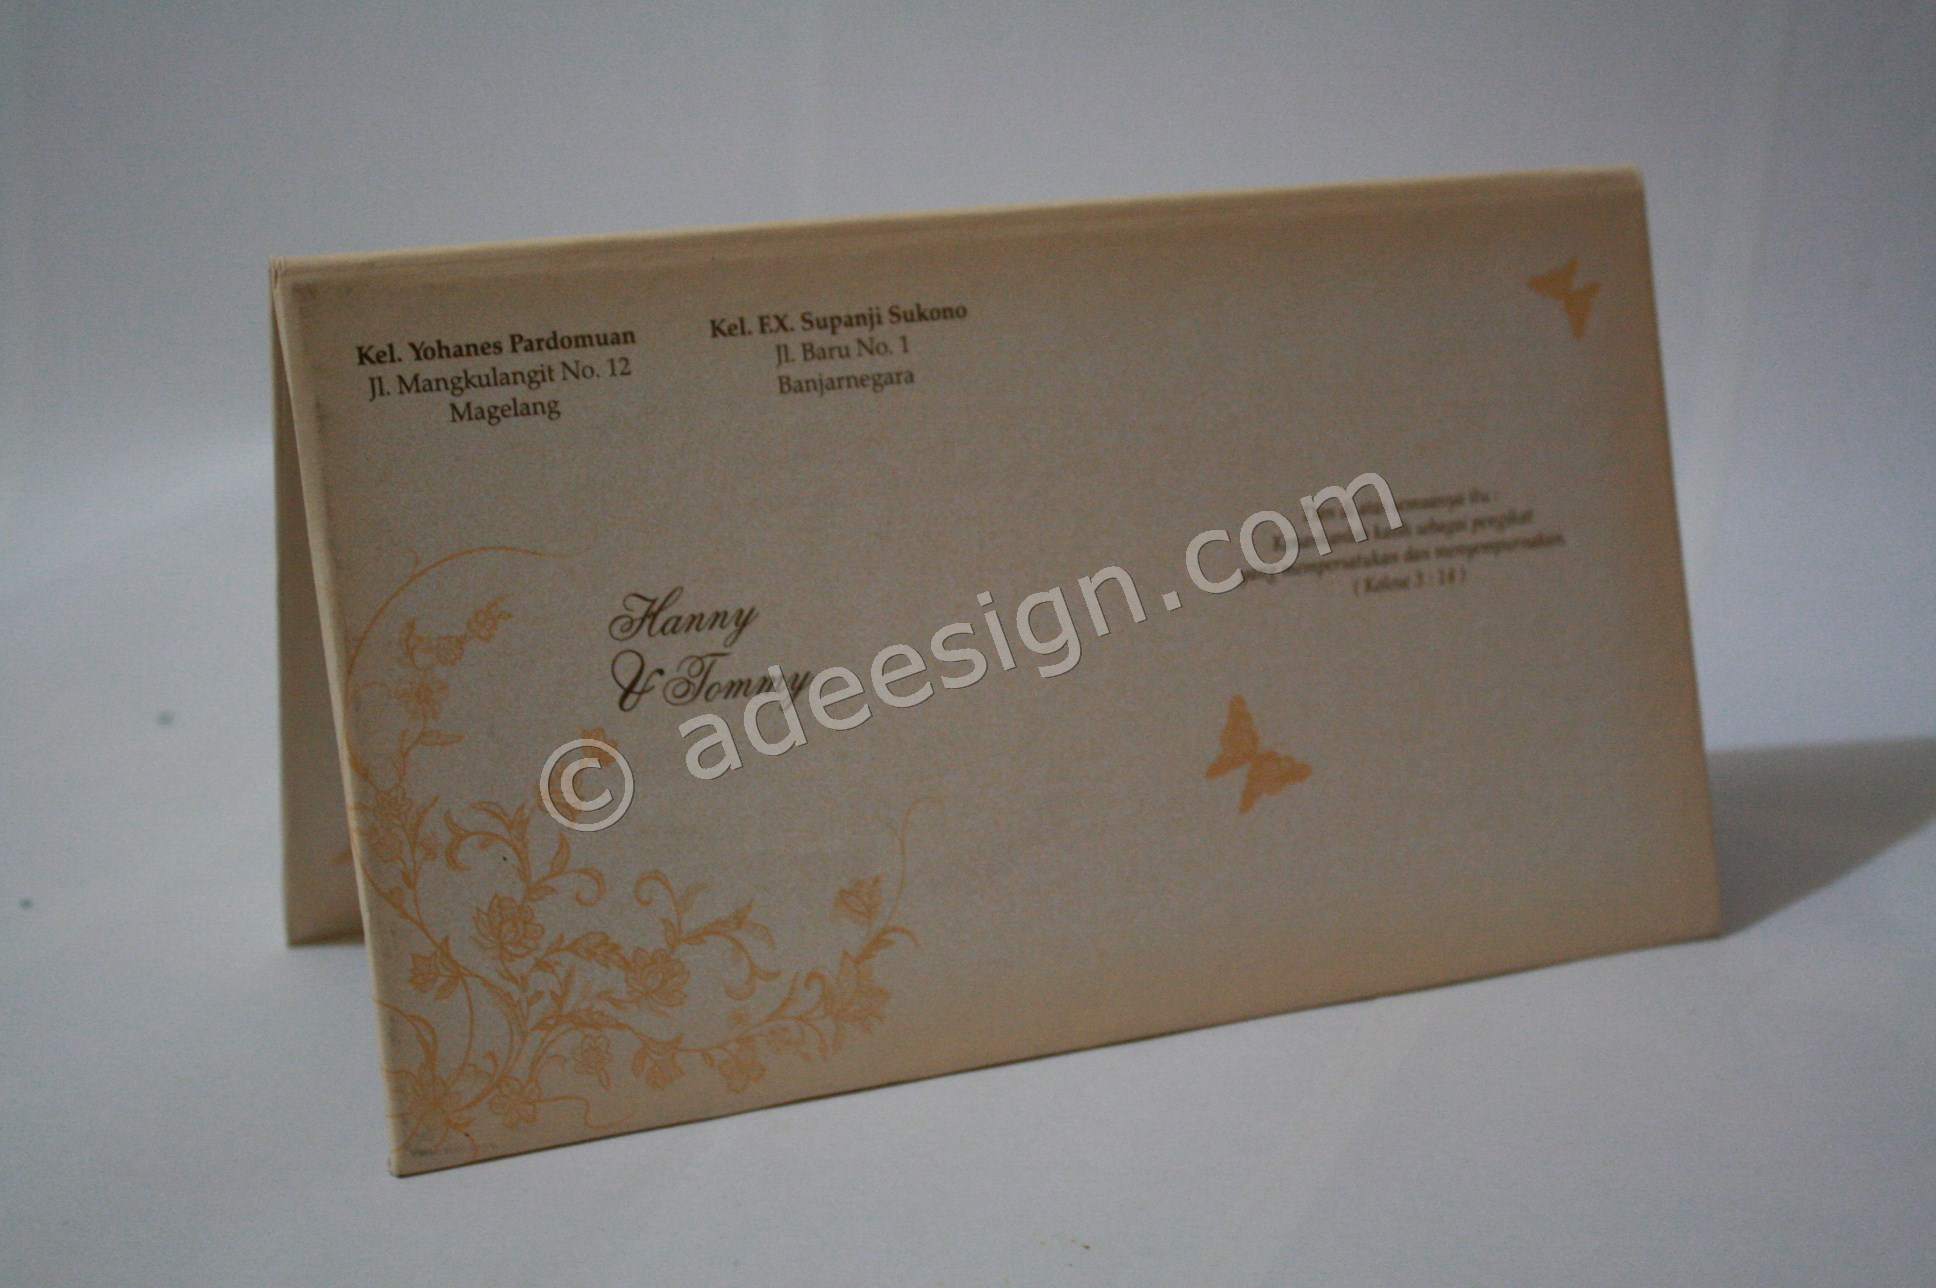 Kartu Undangan Pernikahan Hard Cover Hanny dan Tommy 4 - Percetakan Wedding Invitations Eksklusif di Dukuh Setro